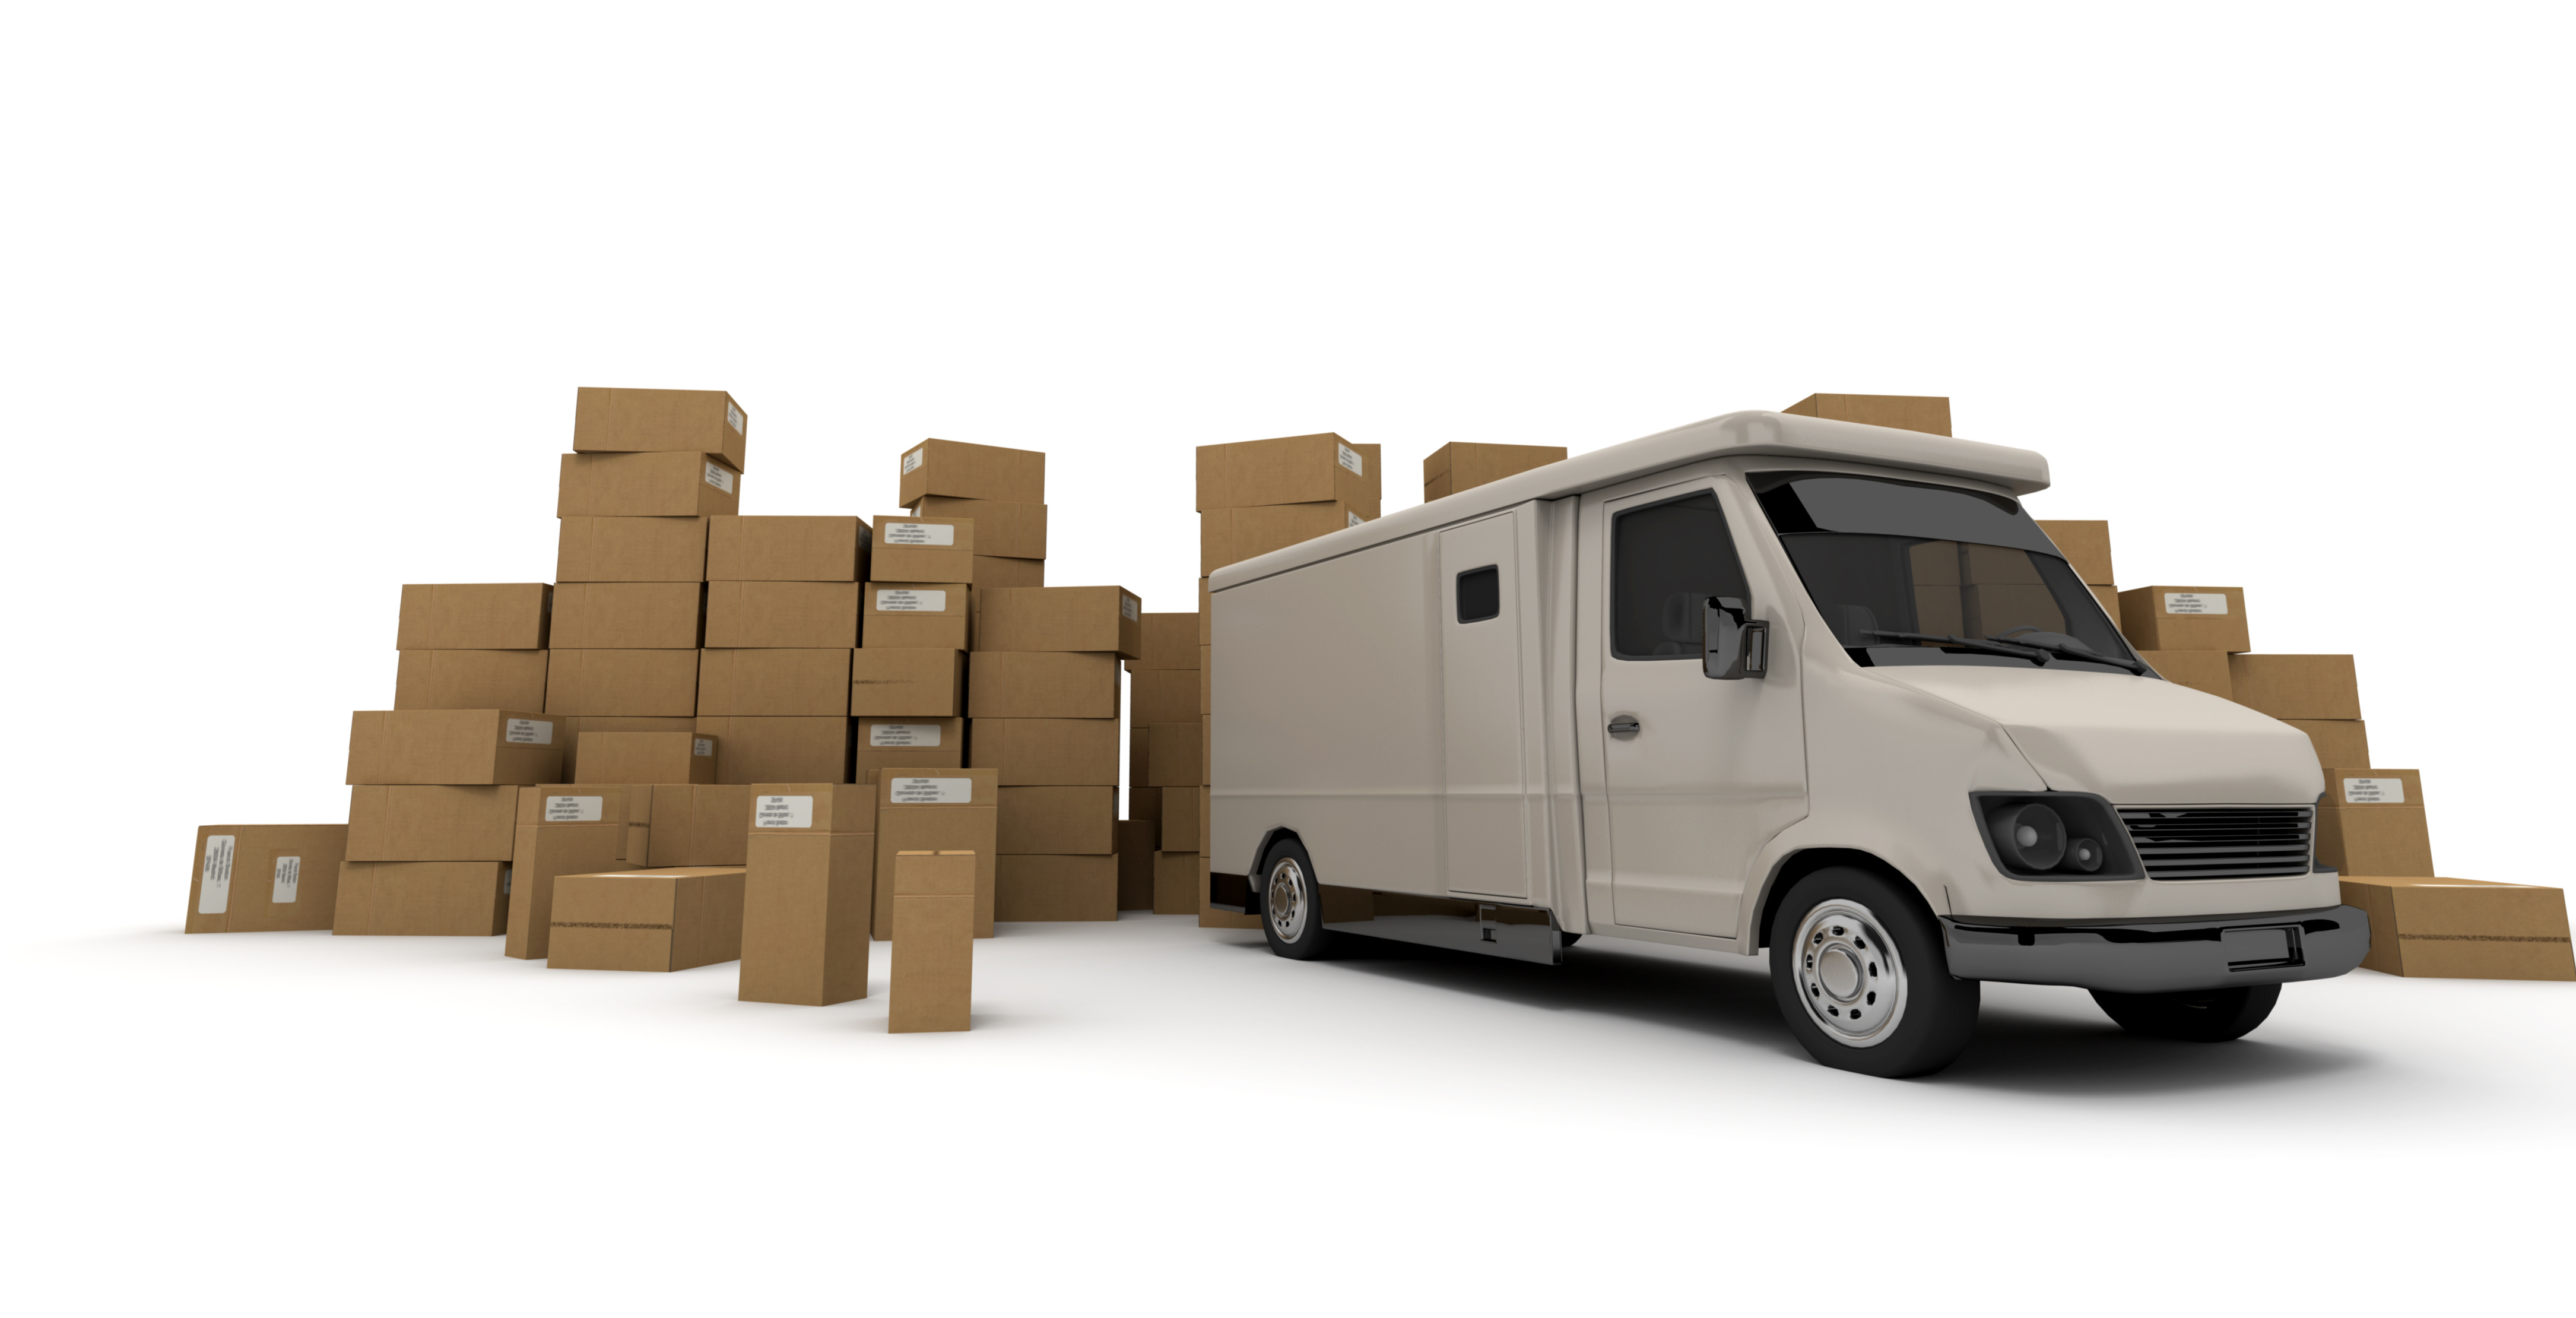 3D rendering of a white van and piles of cardboard boxes (I made up the information on the labels so no copyright issue)  3D rendering of a white van and piles of cardboard boxes (I made up the information on the labels so no copyright issue)